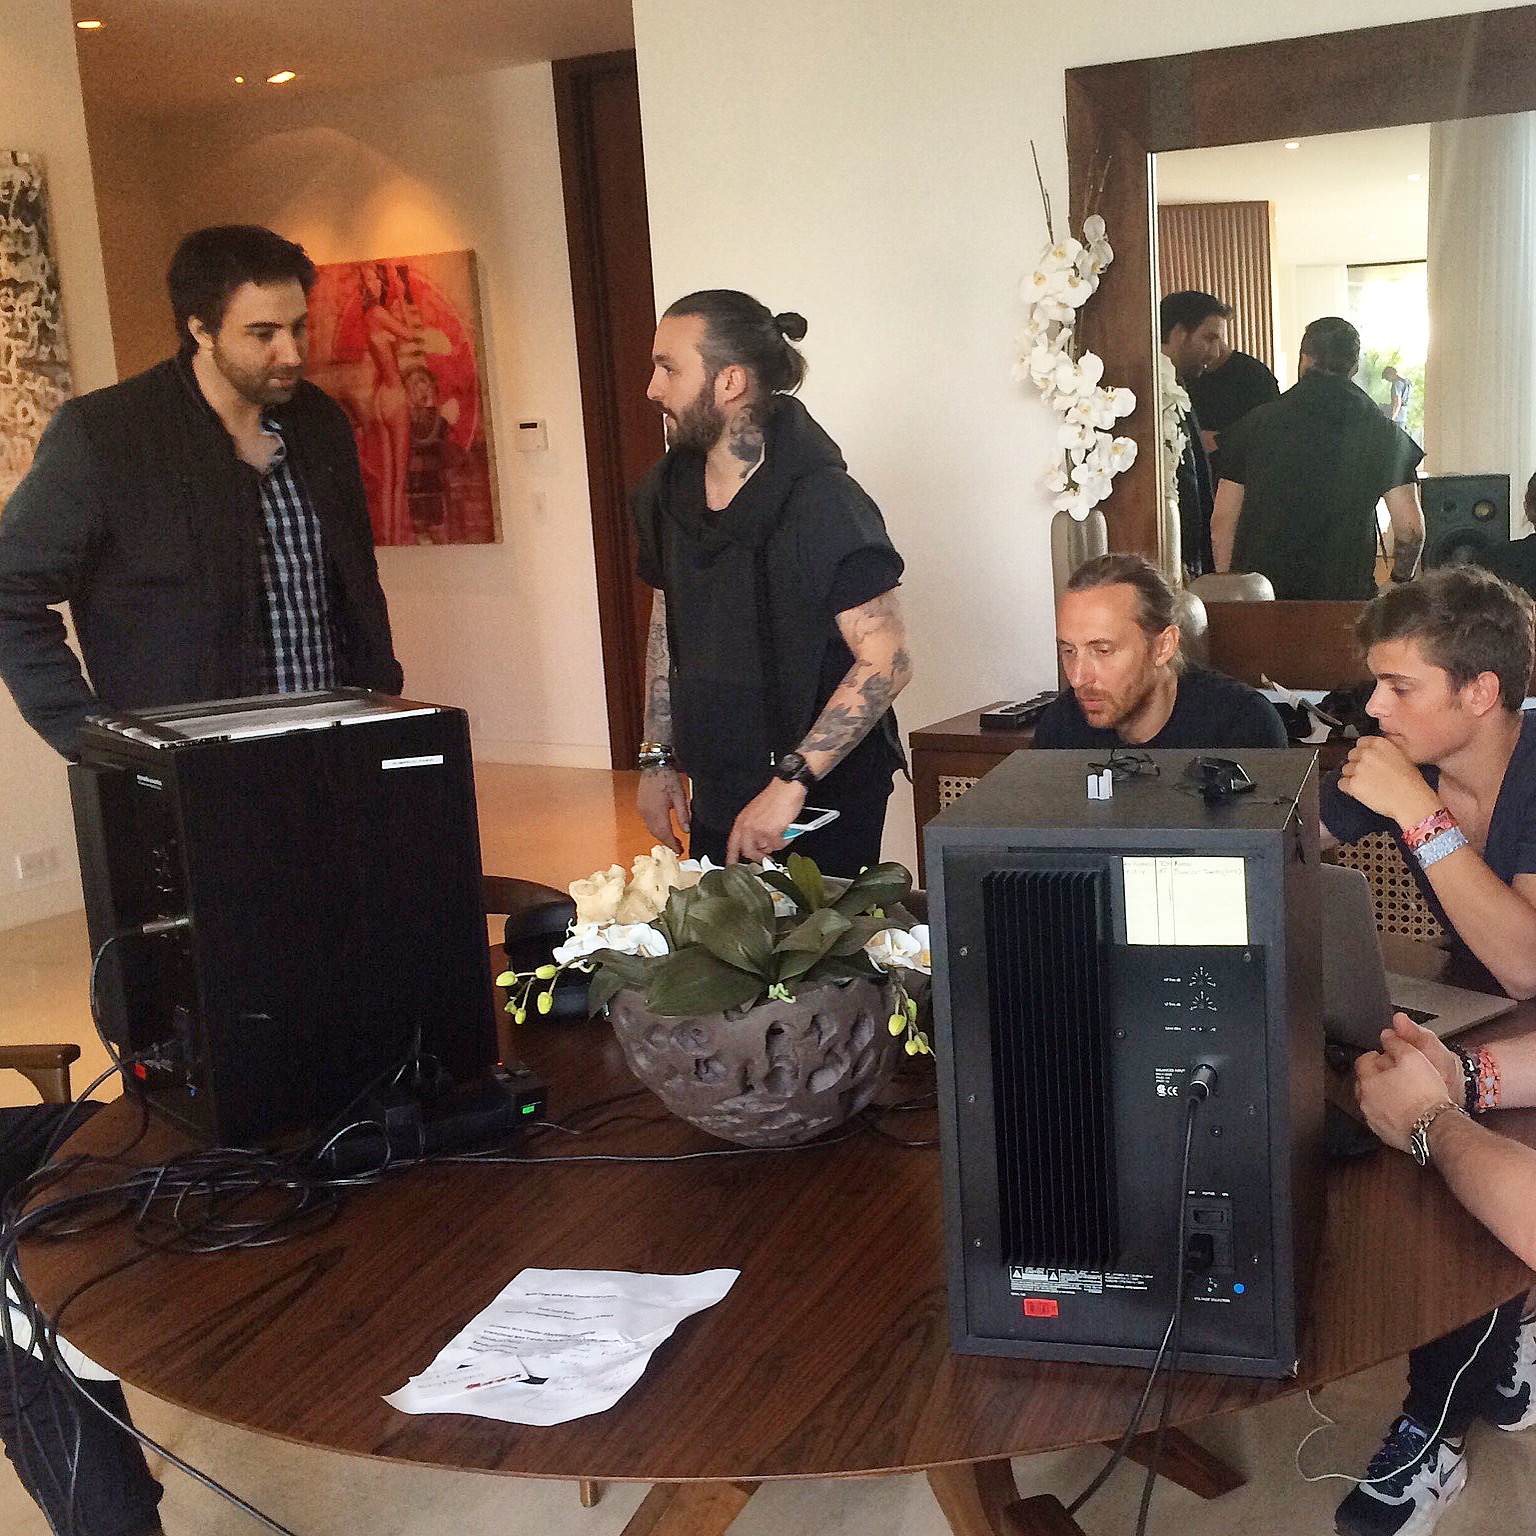 Behind the scenes with stars Martin Garrix, David Guetta, Steve Angello and Writer, Producer Director of WHAT WE STARTED, Bert Marcus - (c) Bert Marcus Productions